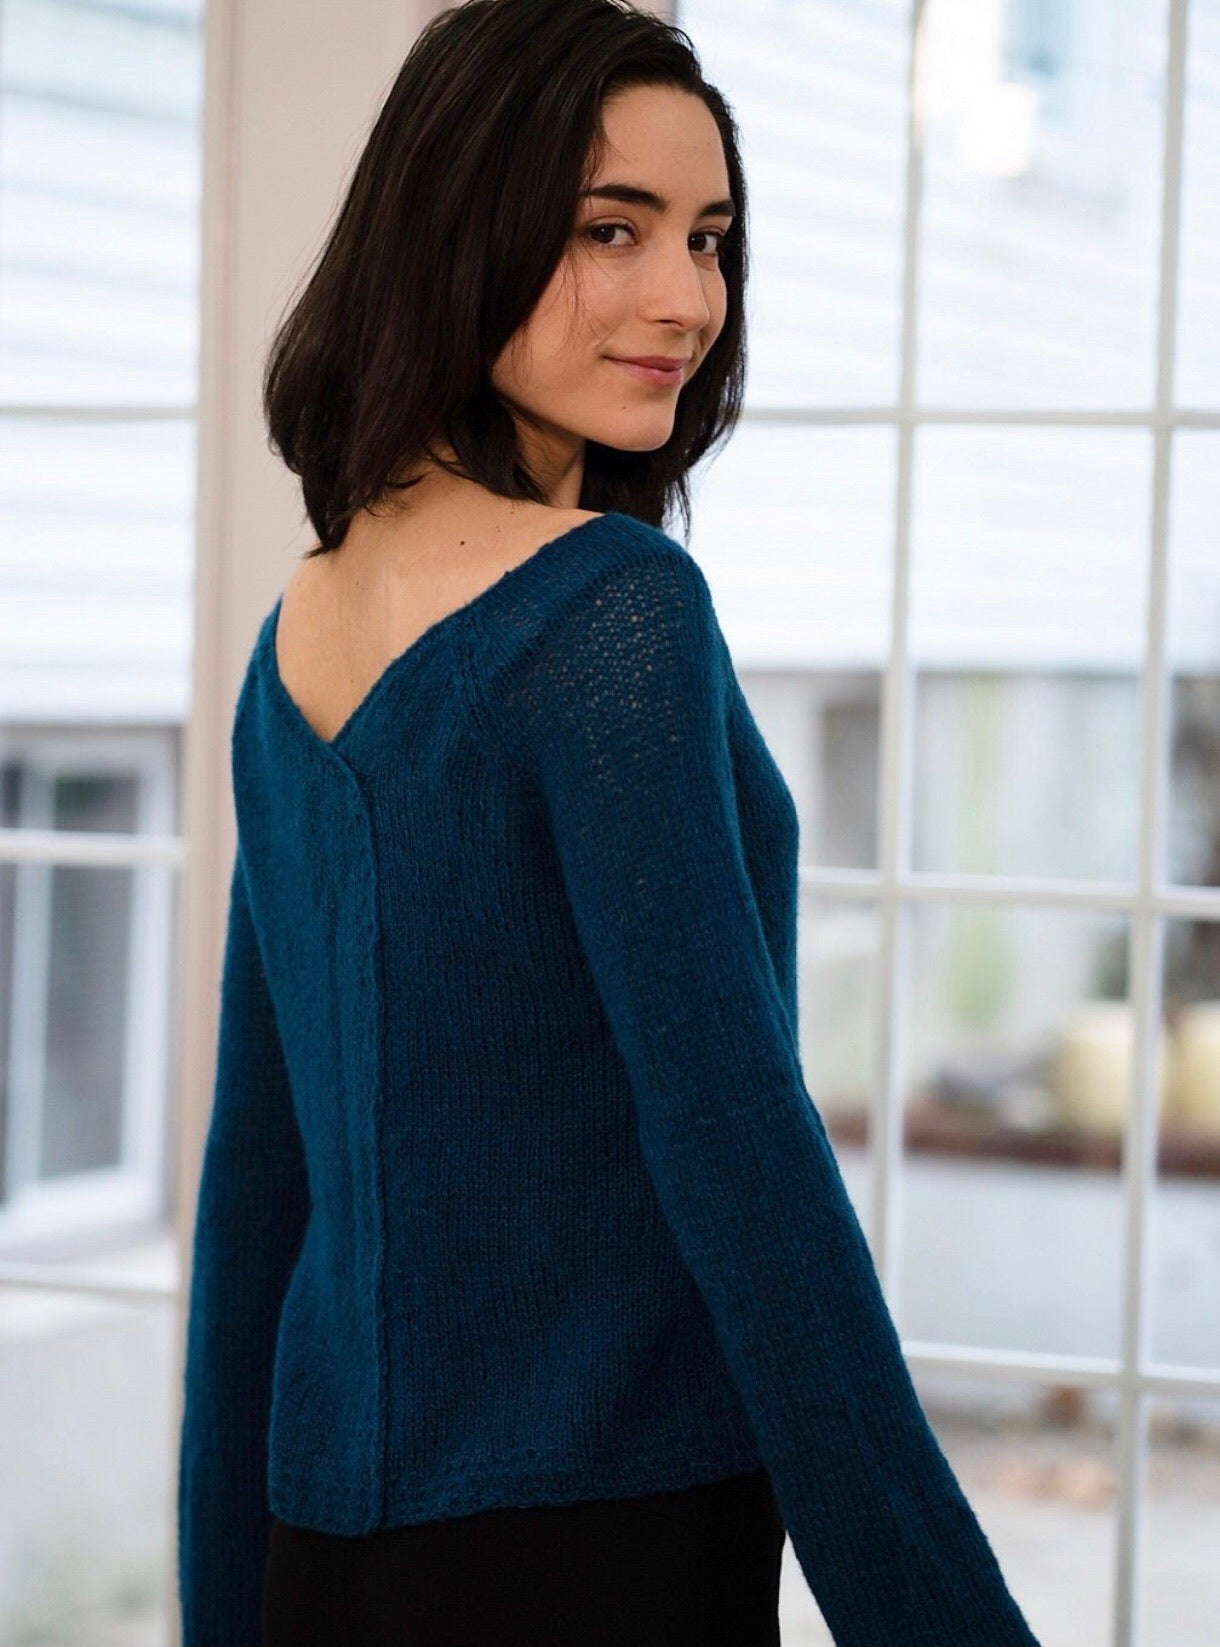 Kirsten Relaxed Pullover Kit